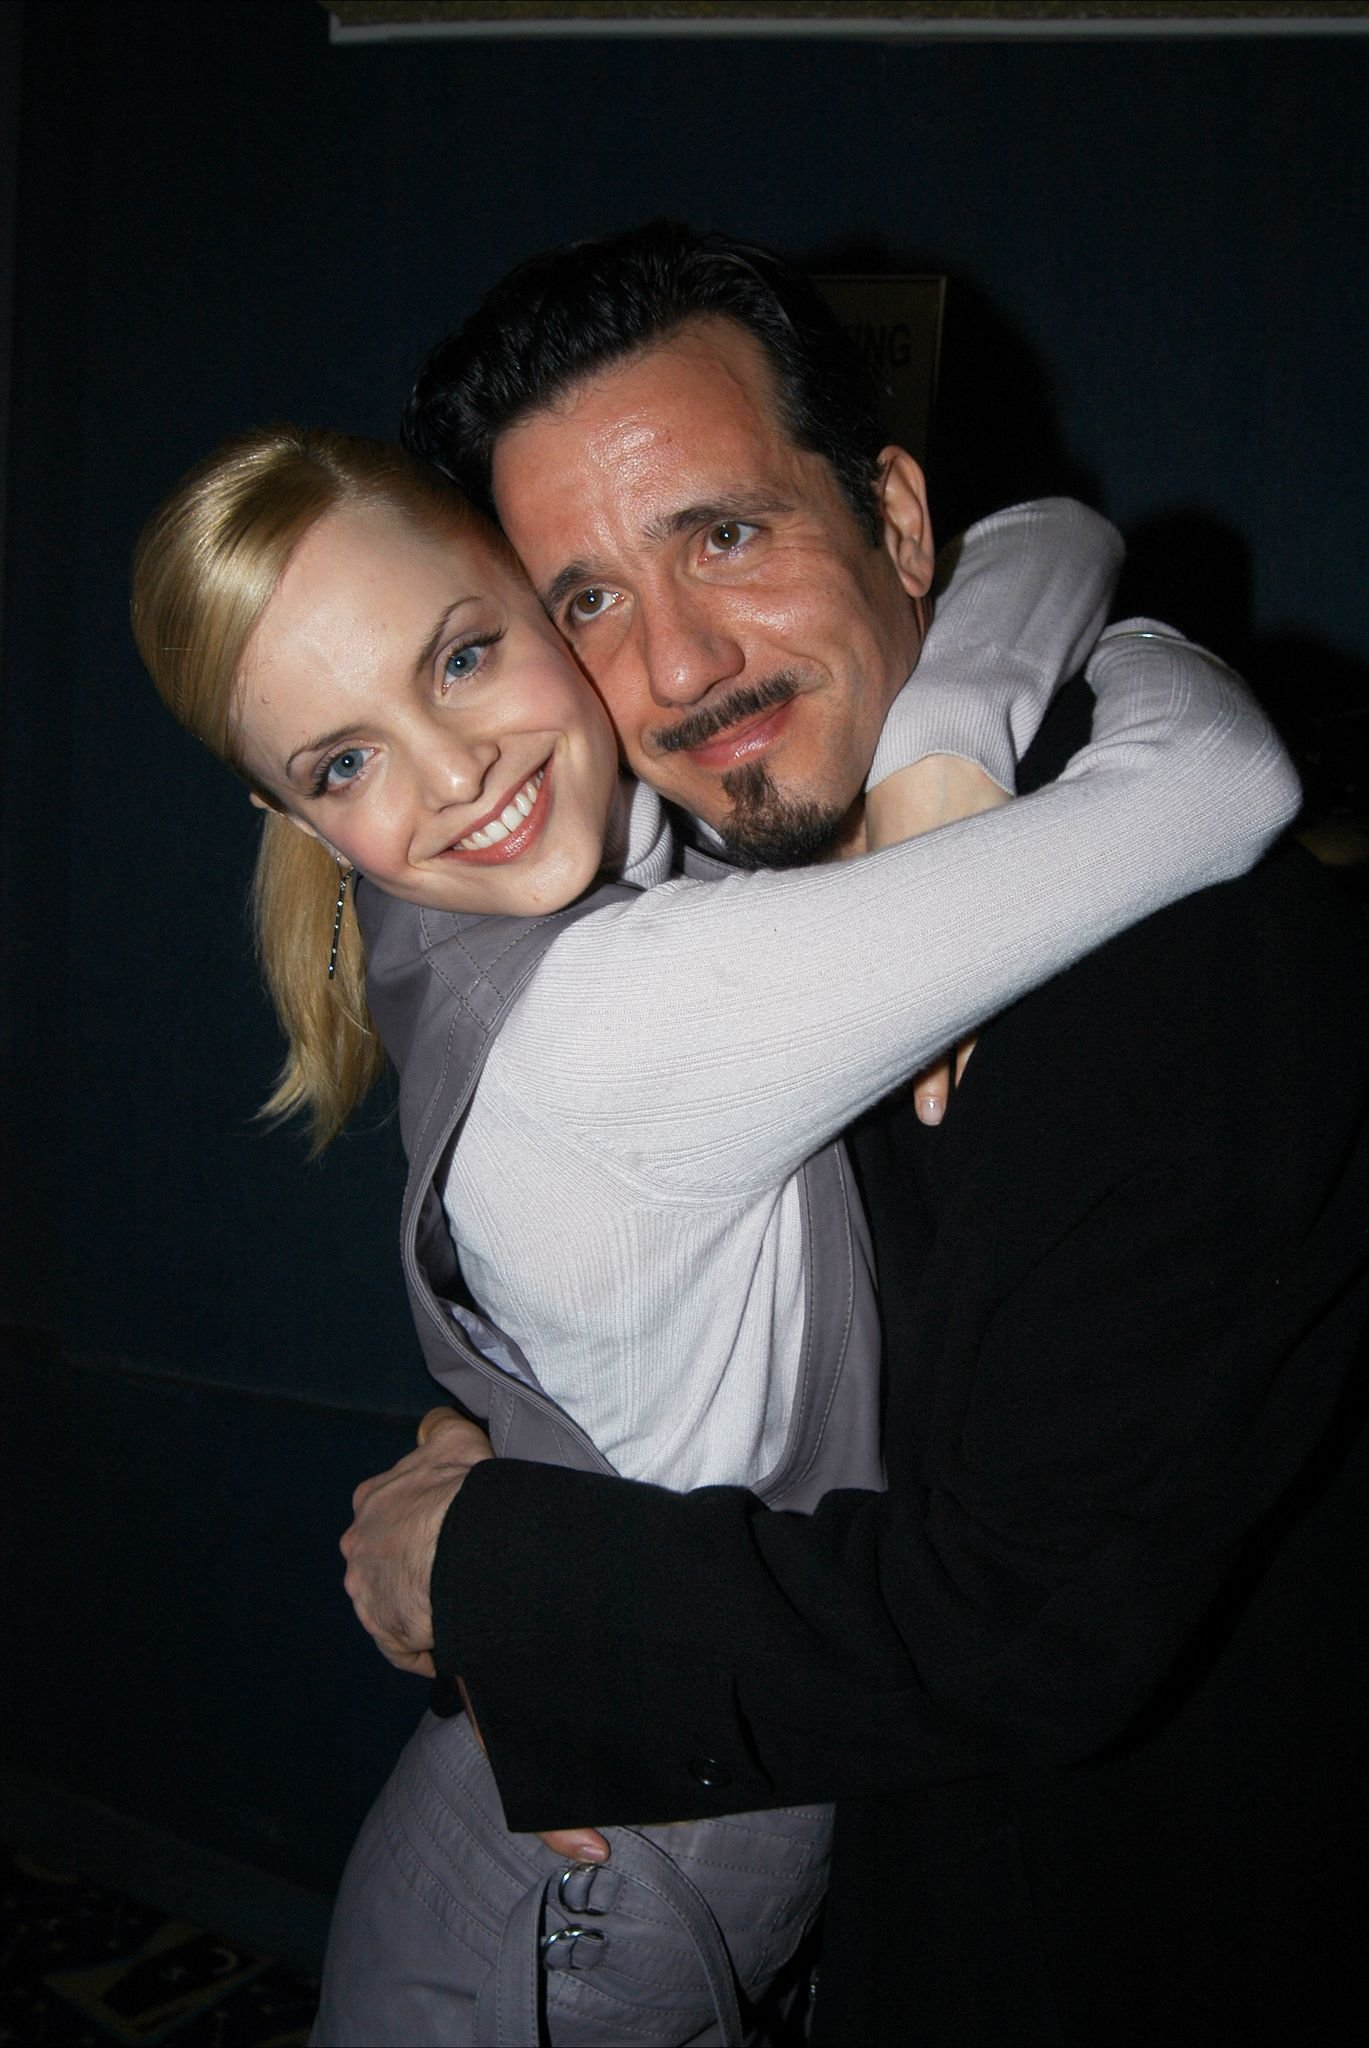 """Mena Suvari and Robert Brinkmann at the New York premiere of the movie """"Spun"""" in 2002 